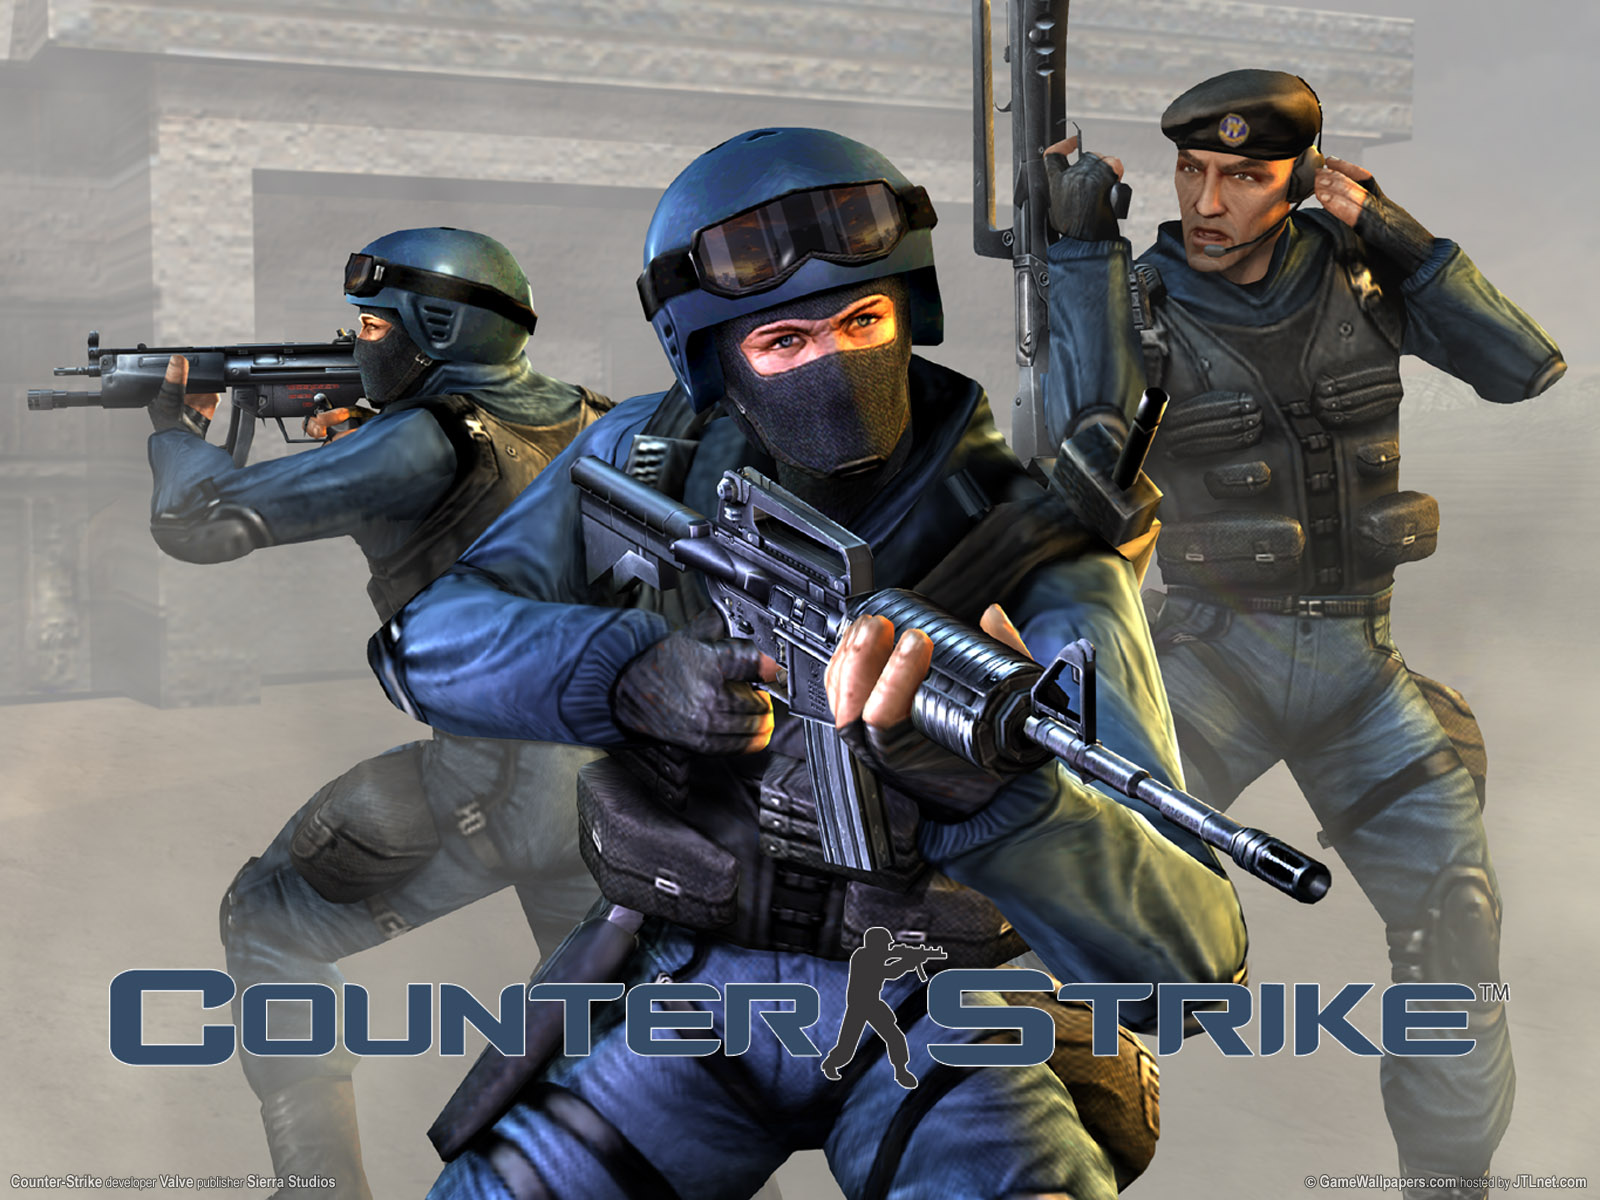 manset Counter Strike Hilesi   robbery Bot v7.0  h4x Bomb indir   Download